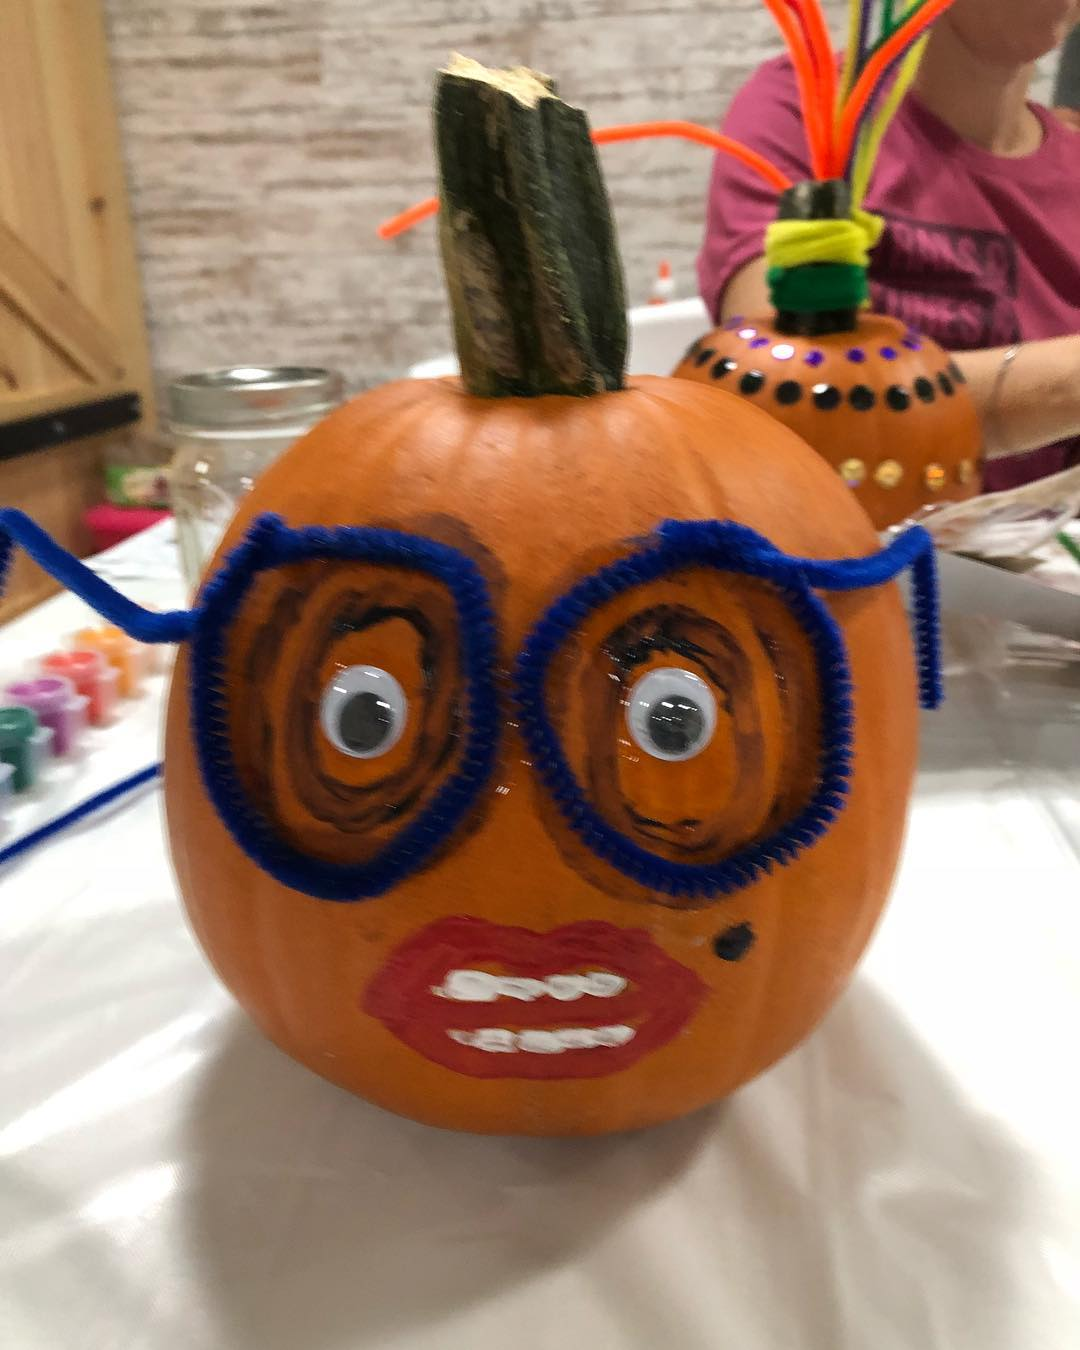 Funny pumpkin decor for Halloween. Pic by joybellaphotography